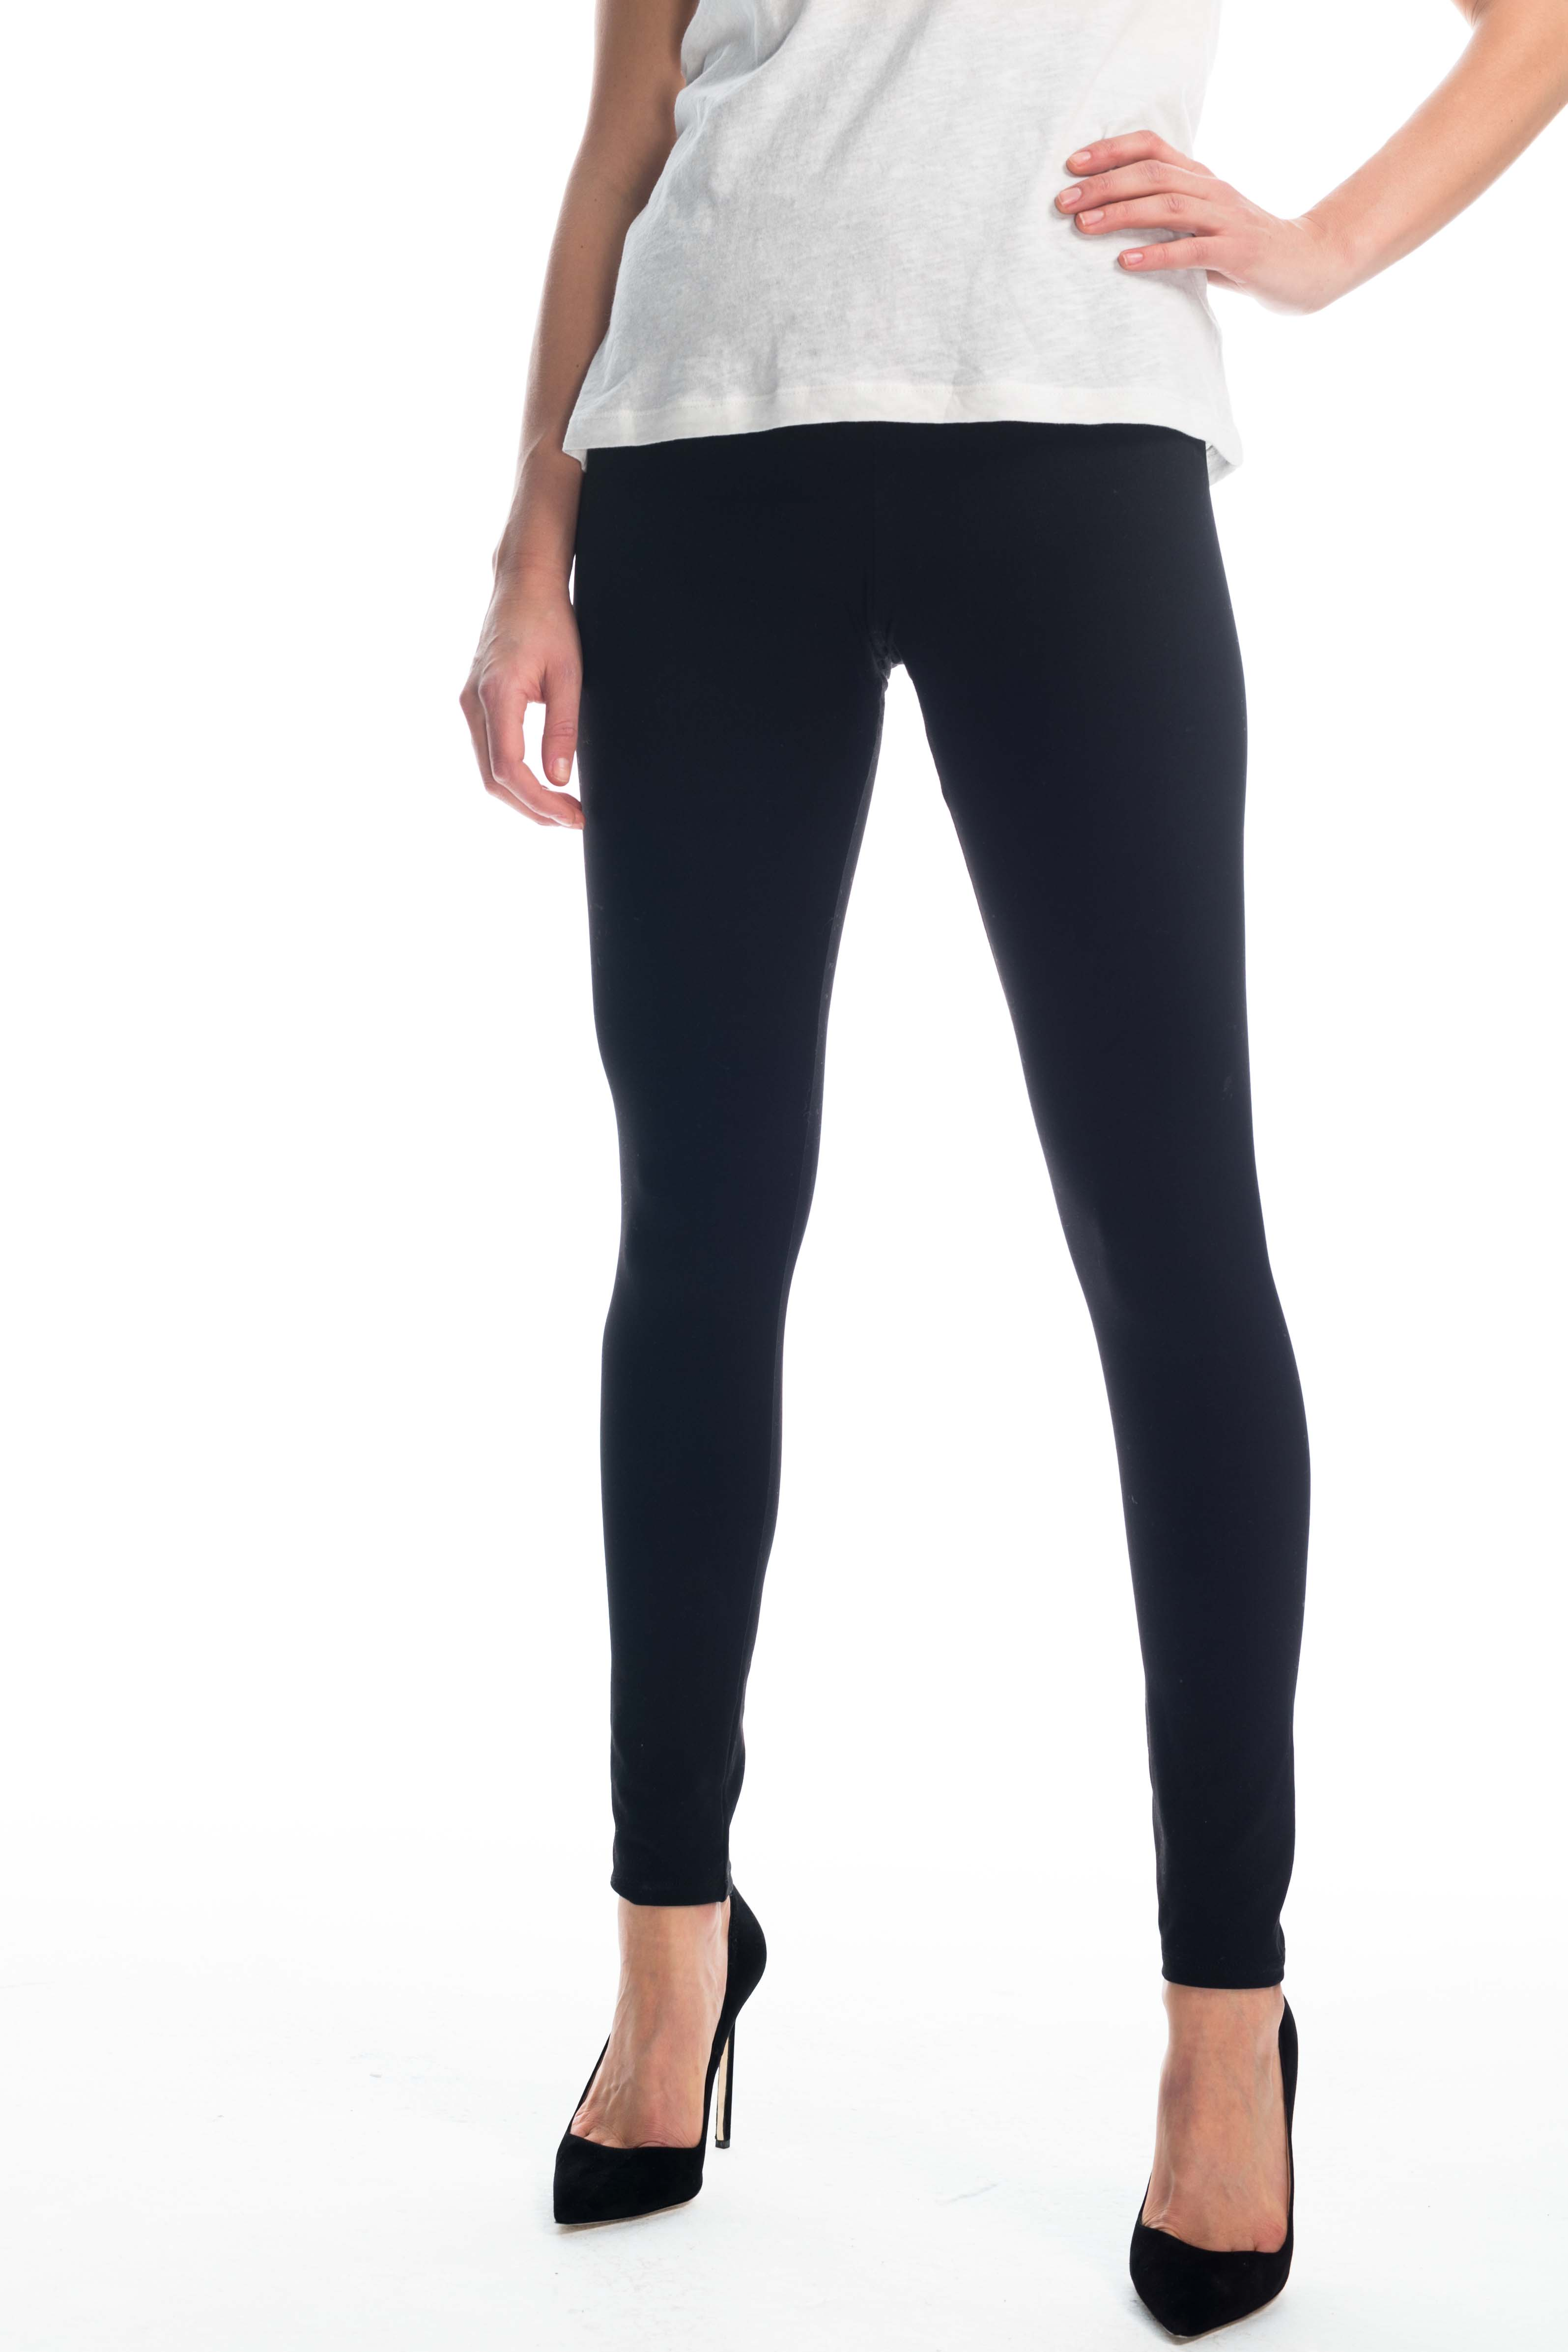 90ba447ee2c07 New and Innovative Line of Pants